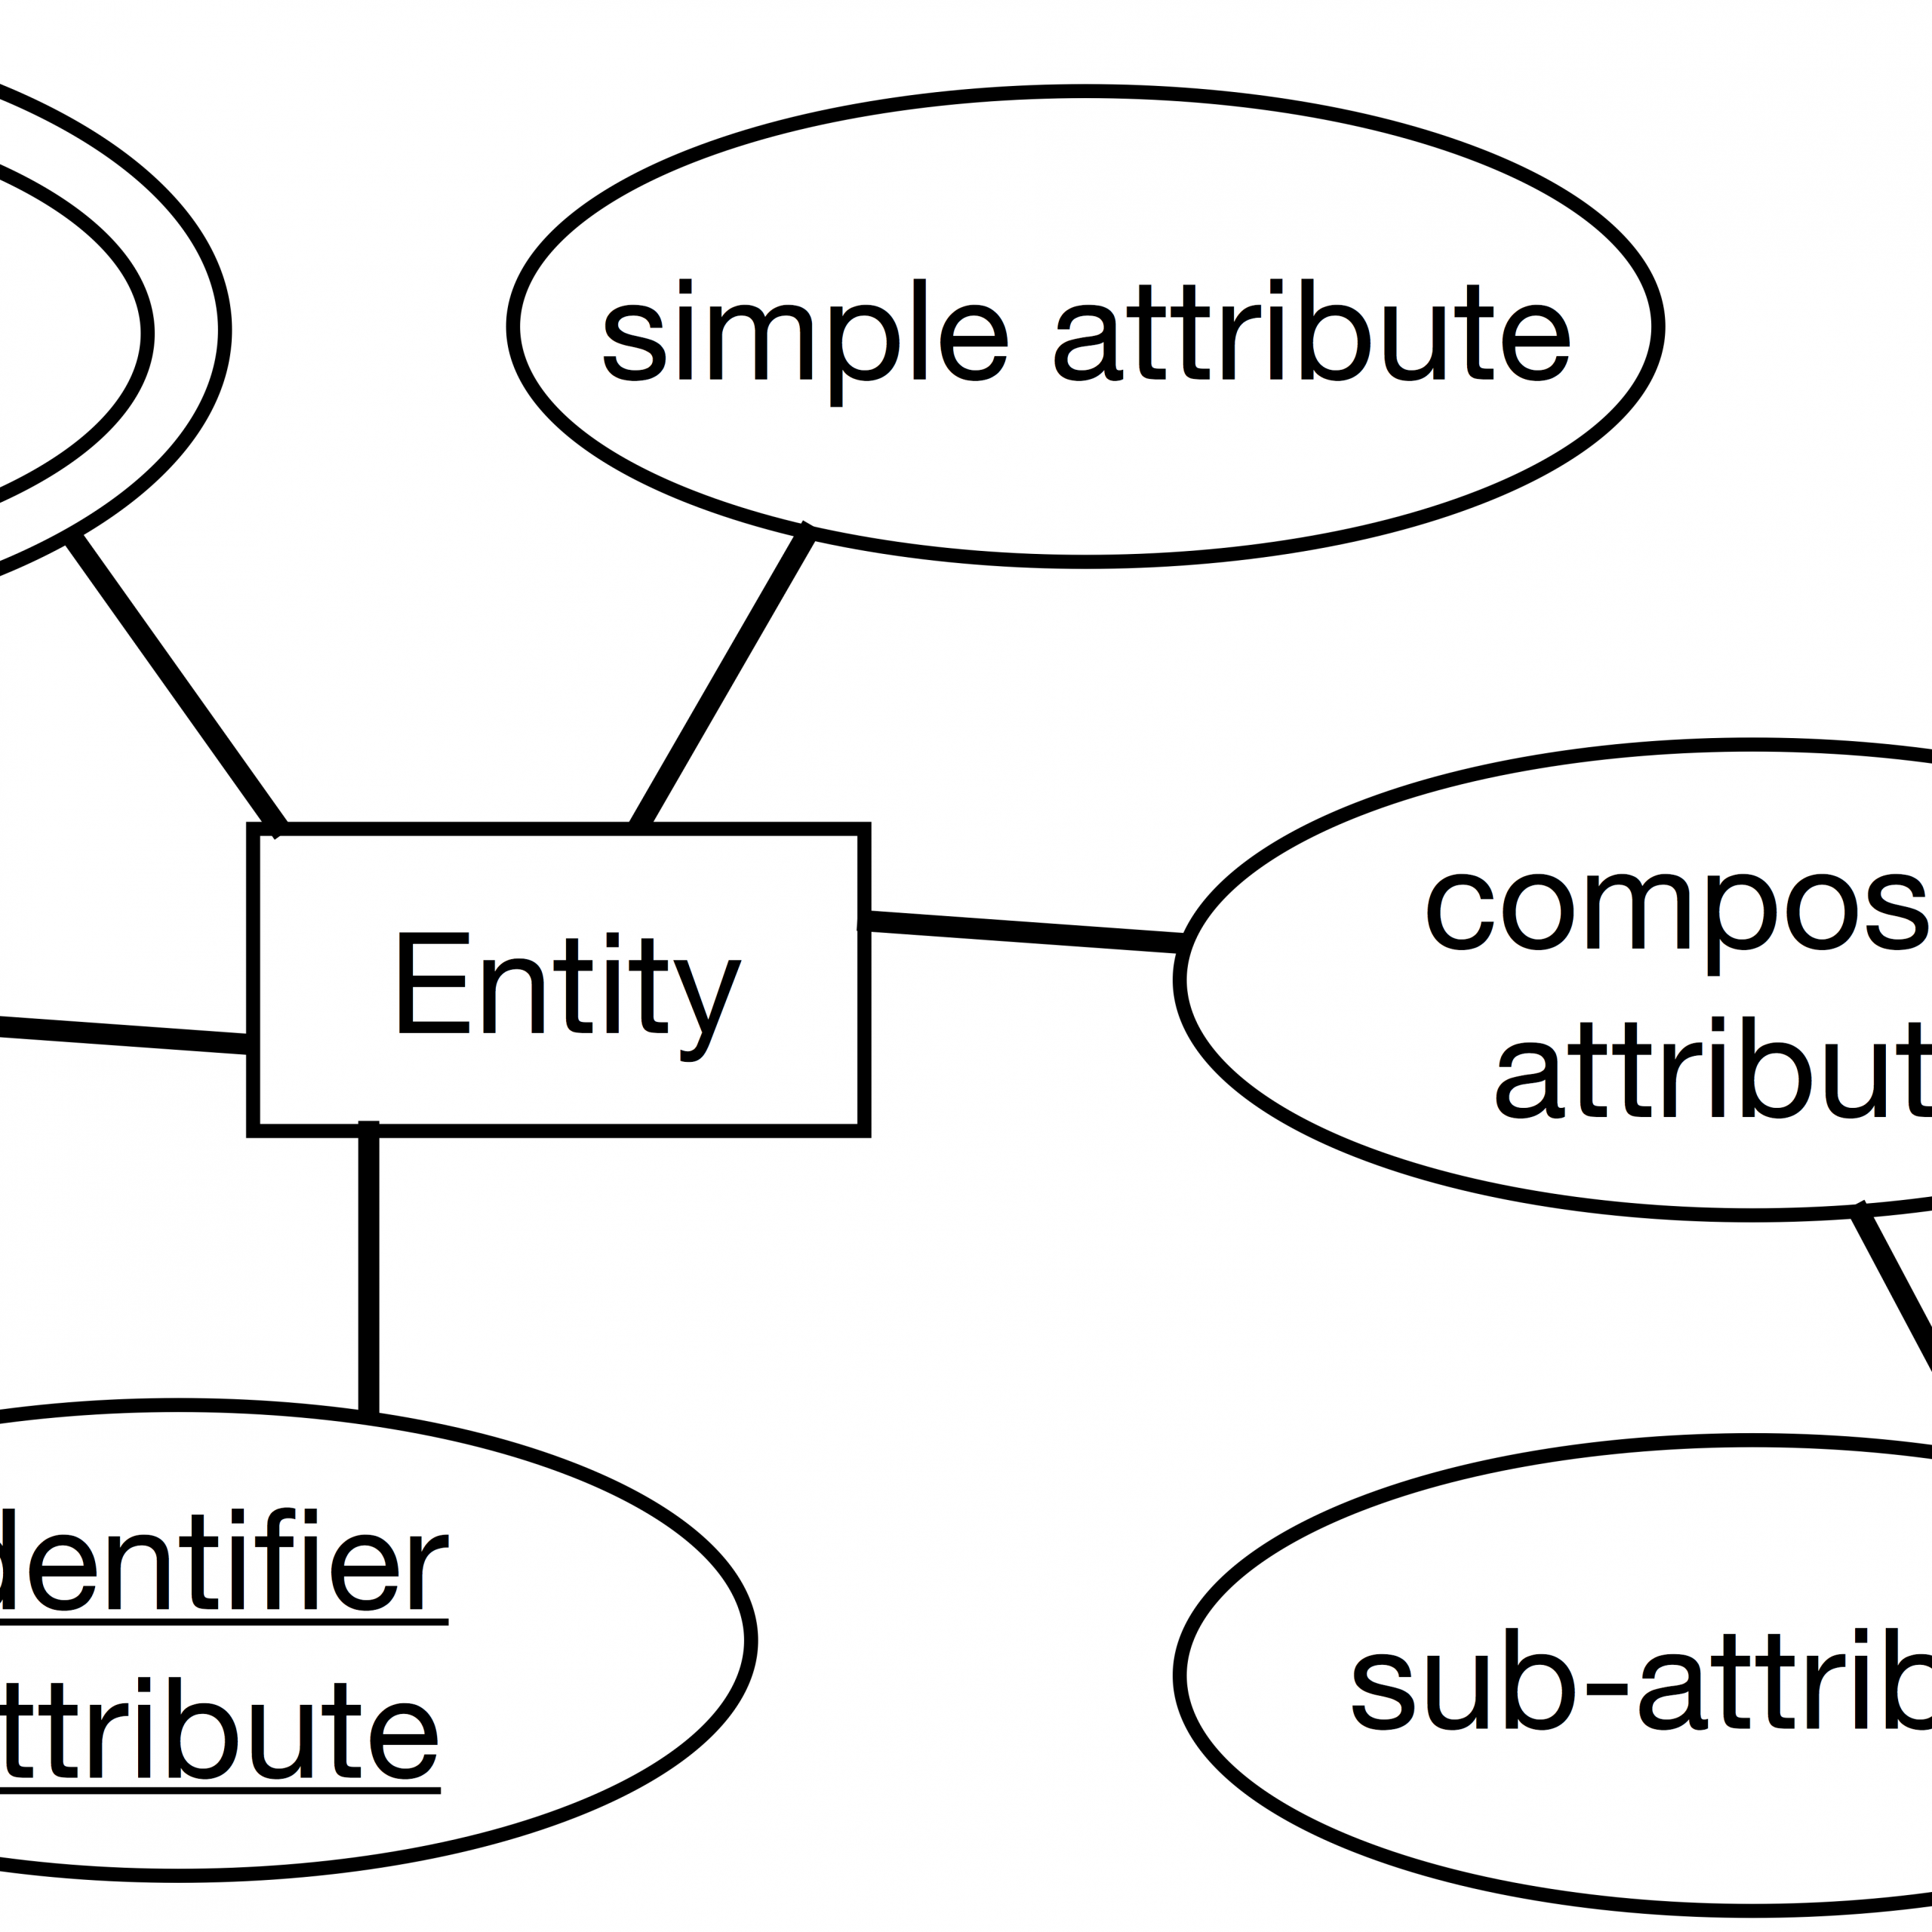 Iste-608 Study Guide, Part 2 · Briennakh intended for Er Diagram Composite Attribute